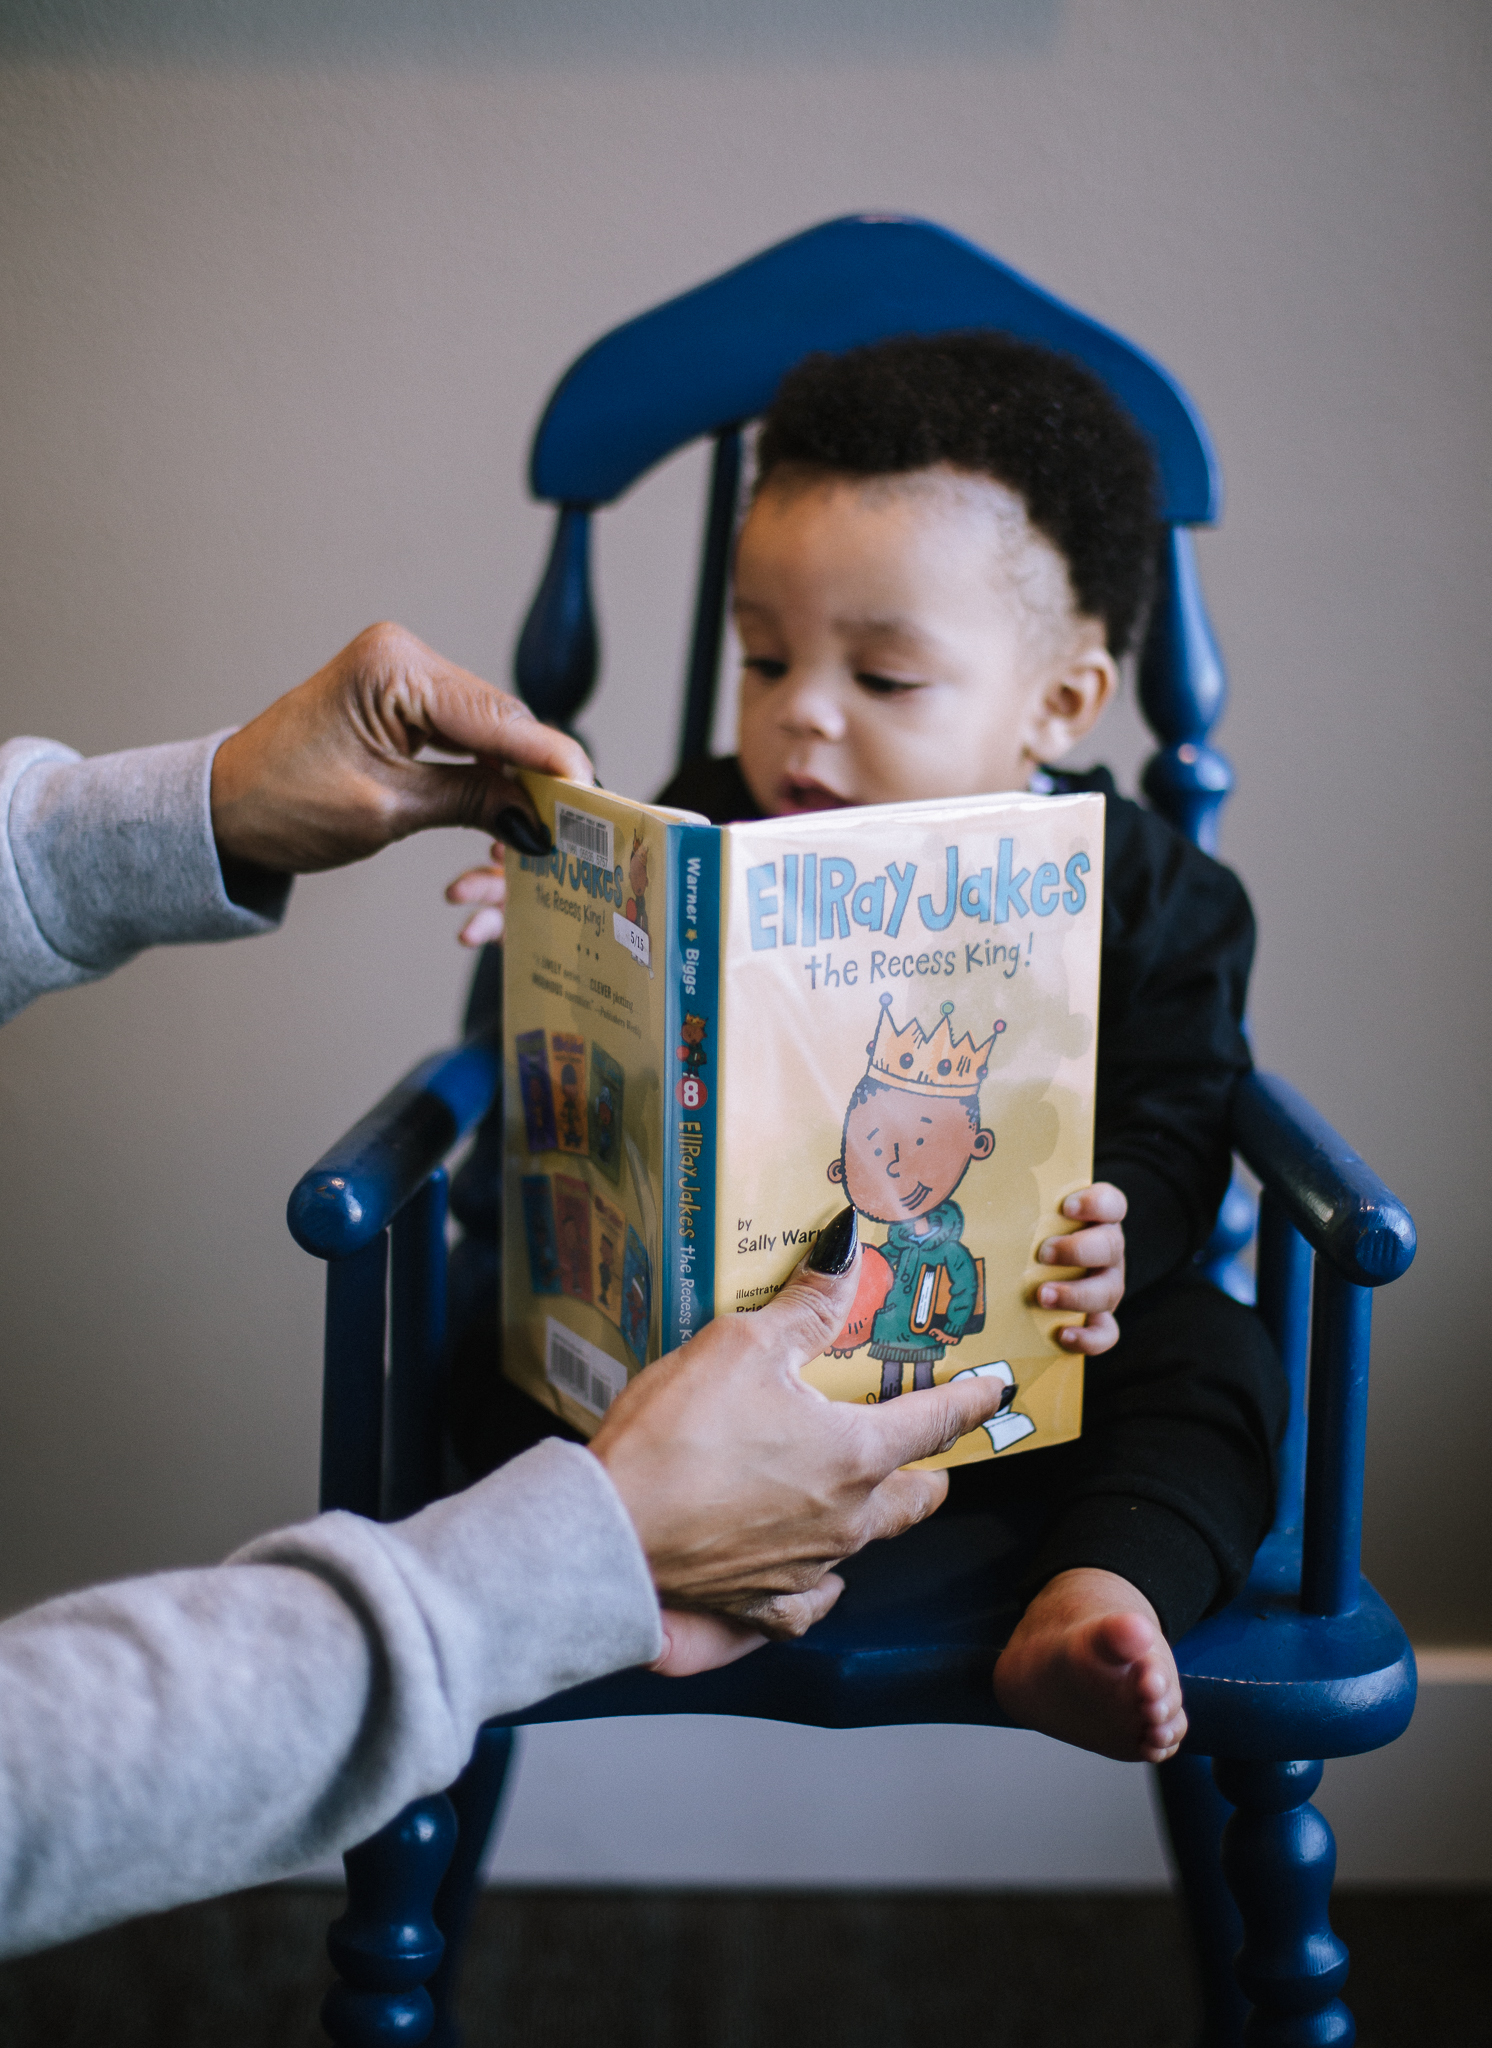 Nanny helping him hold up his book :] i love when grandmother's are there to help their daughters during these sessions. it helped little man feel comfortable and takes away the stress.